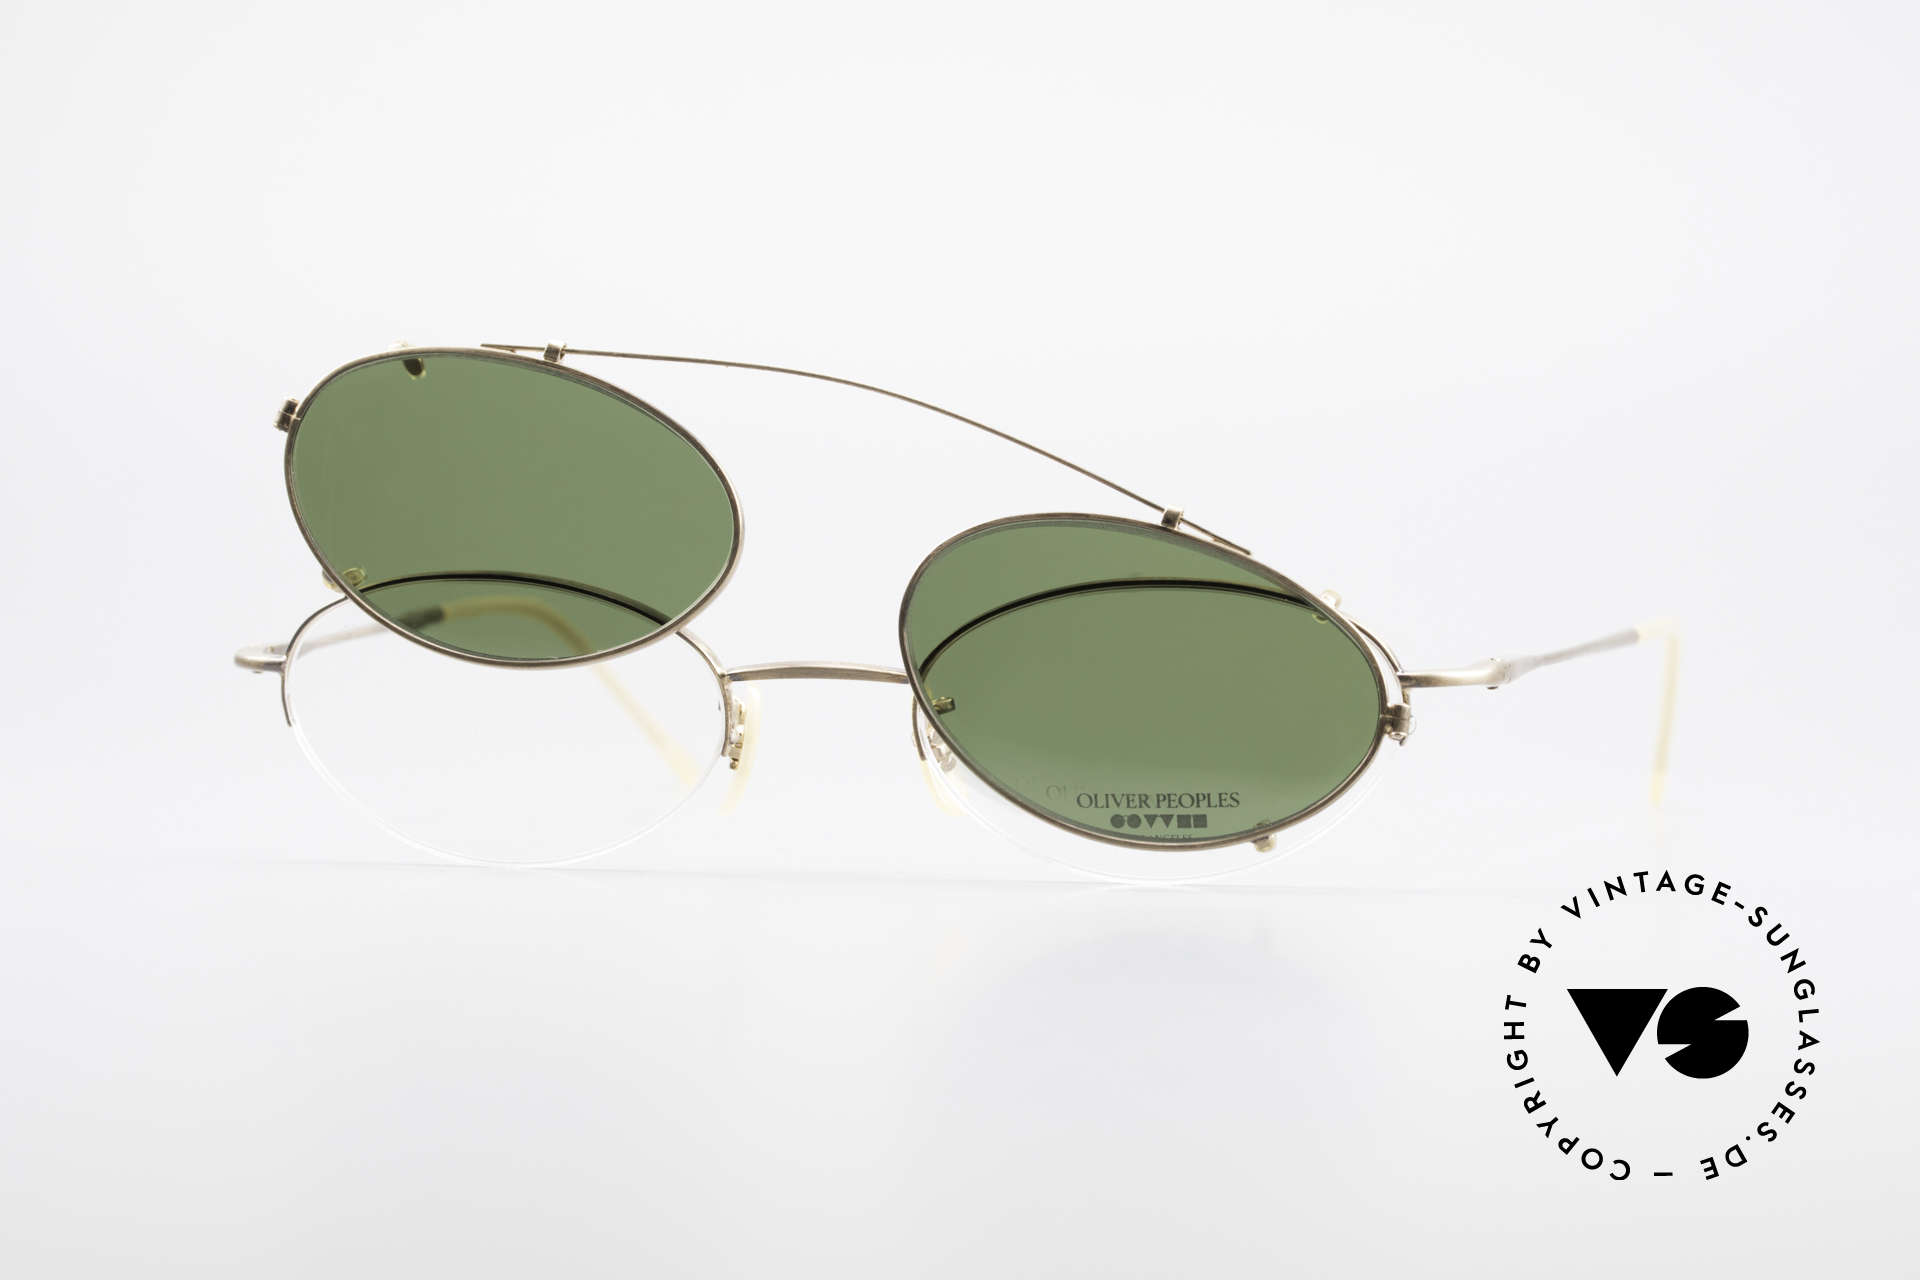 "Oliver Peoples OP599 Oval Eyeglass-Frame Clip On, O. Peoples LA = ""distinctive specs with personality"", Made for Men and Women"